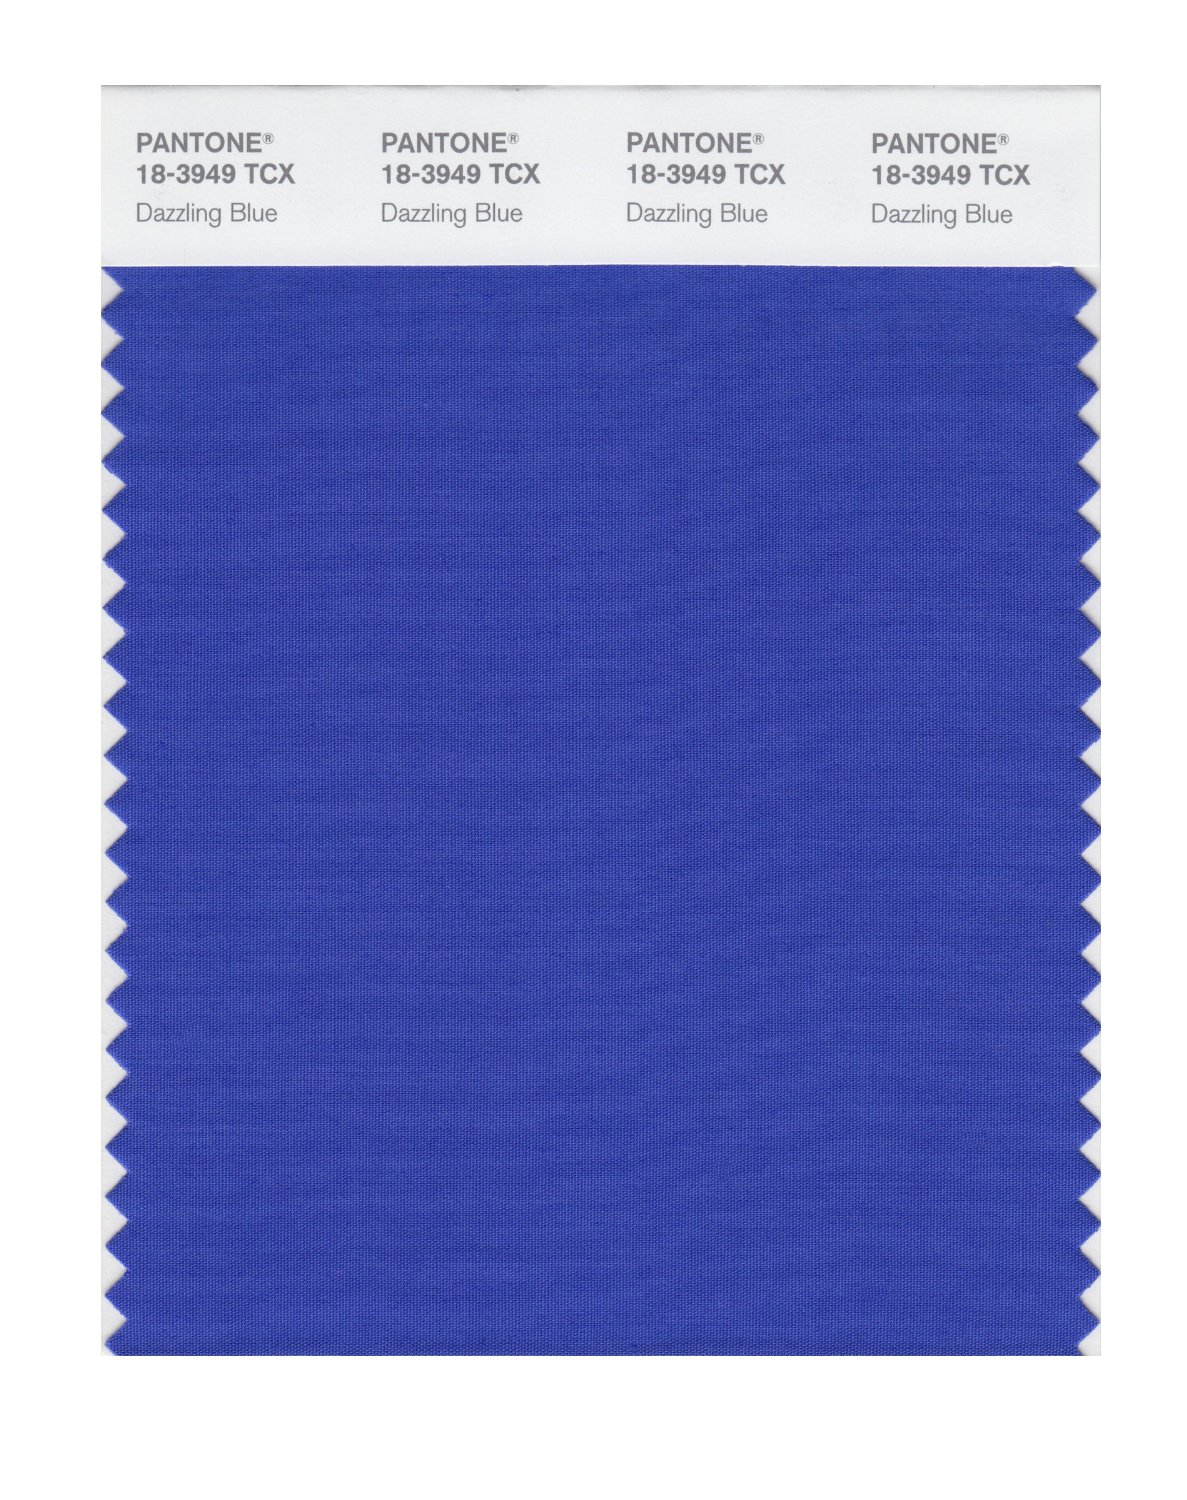 Pantone Smart Swatch 18-3949 Dazzling Blue